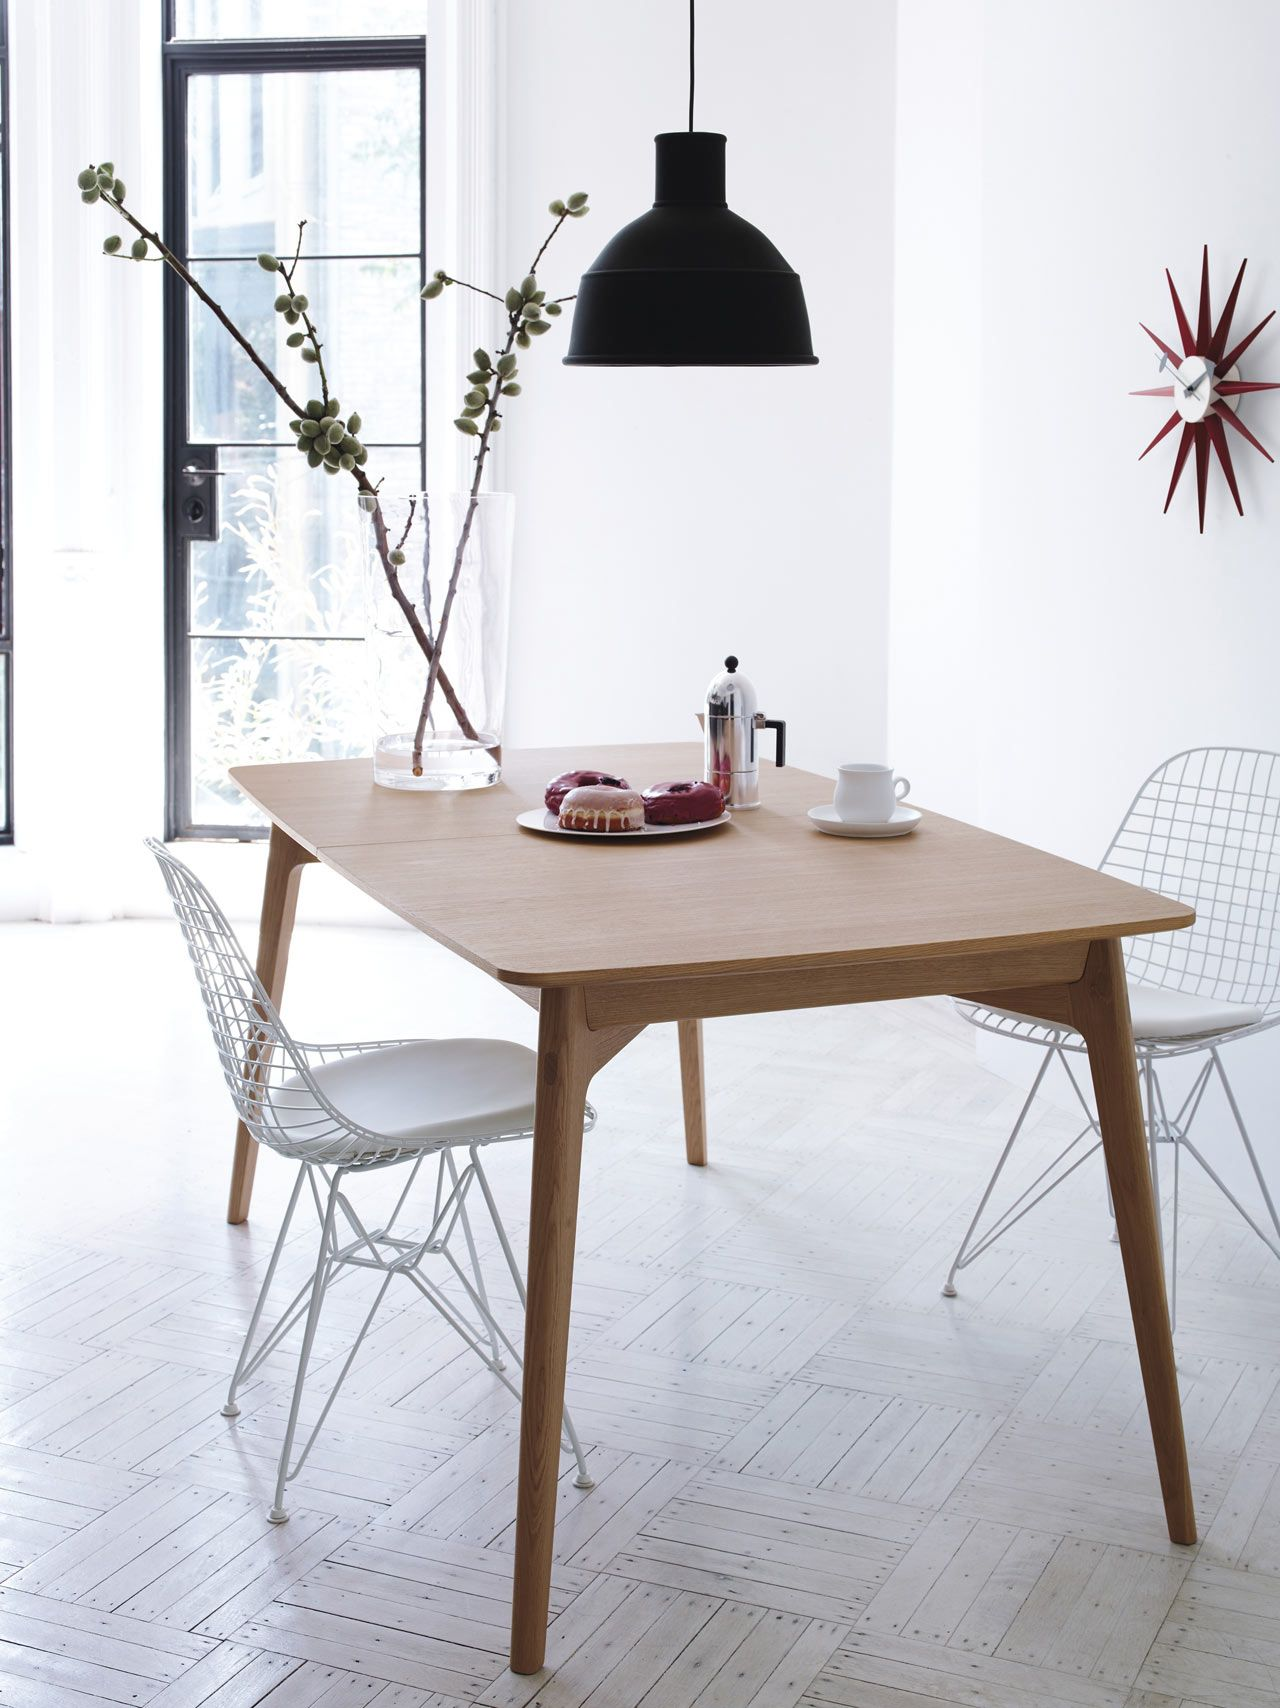 Exceptional New Furnishings From Design Within Reach Bring Together Old And New Forms